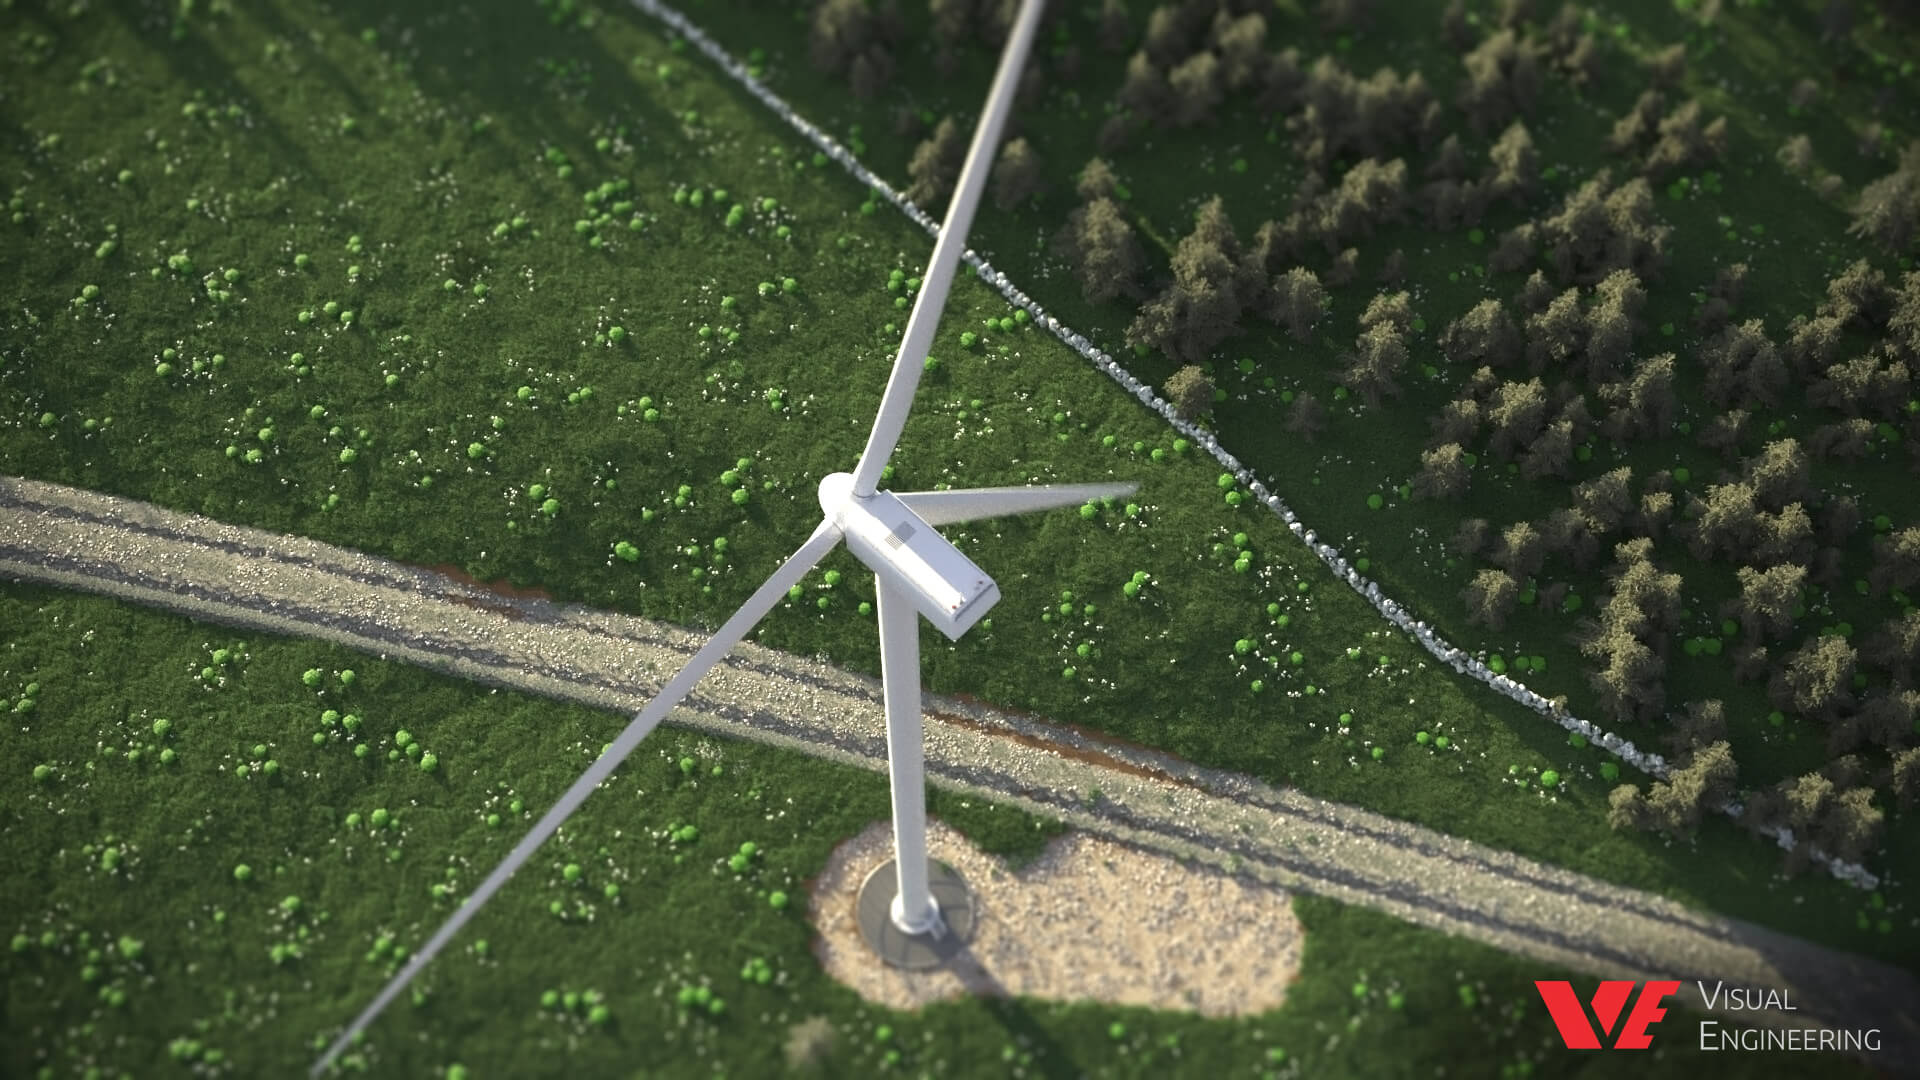 VE-Home-OurWorks-Windturbine_Landscape-1920px-001 Our Work